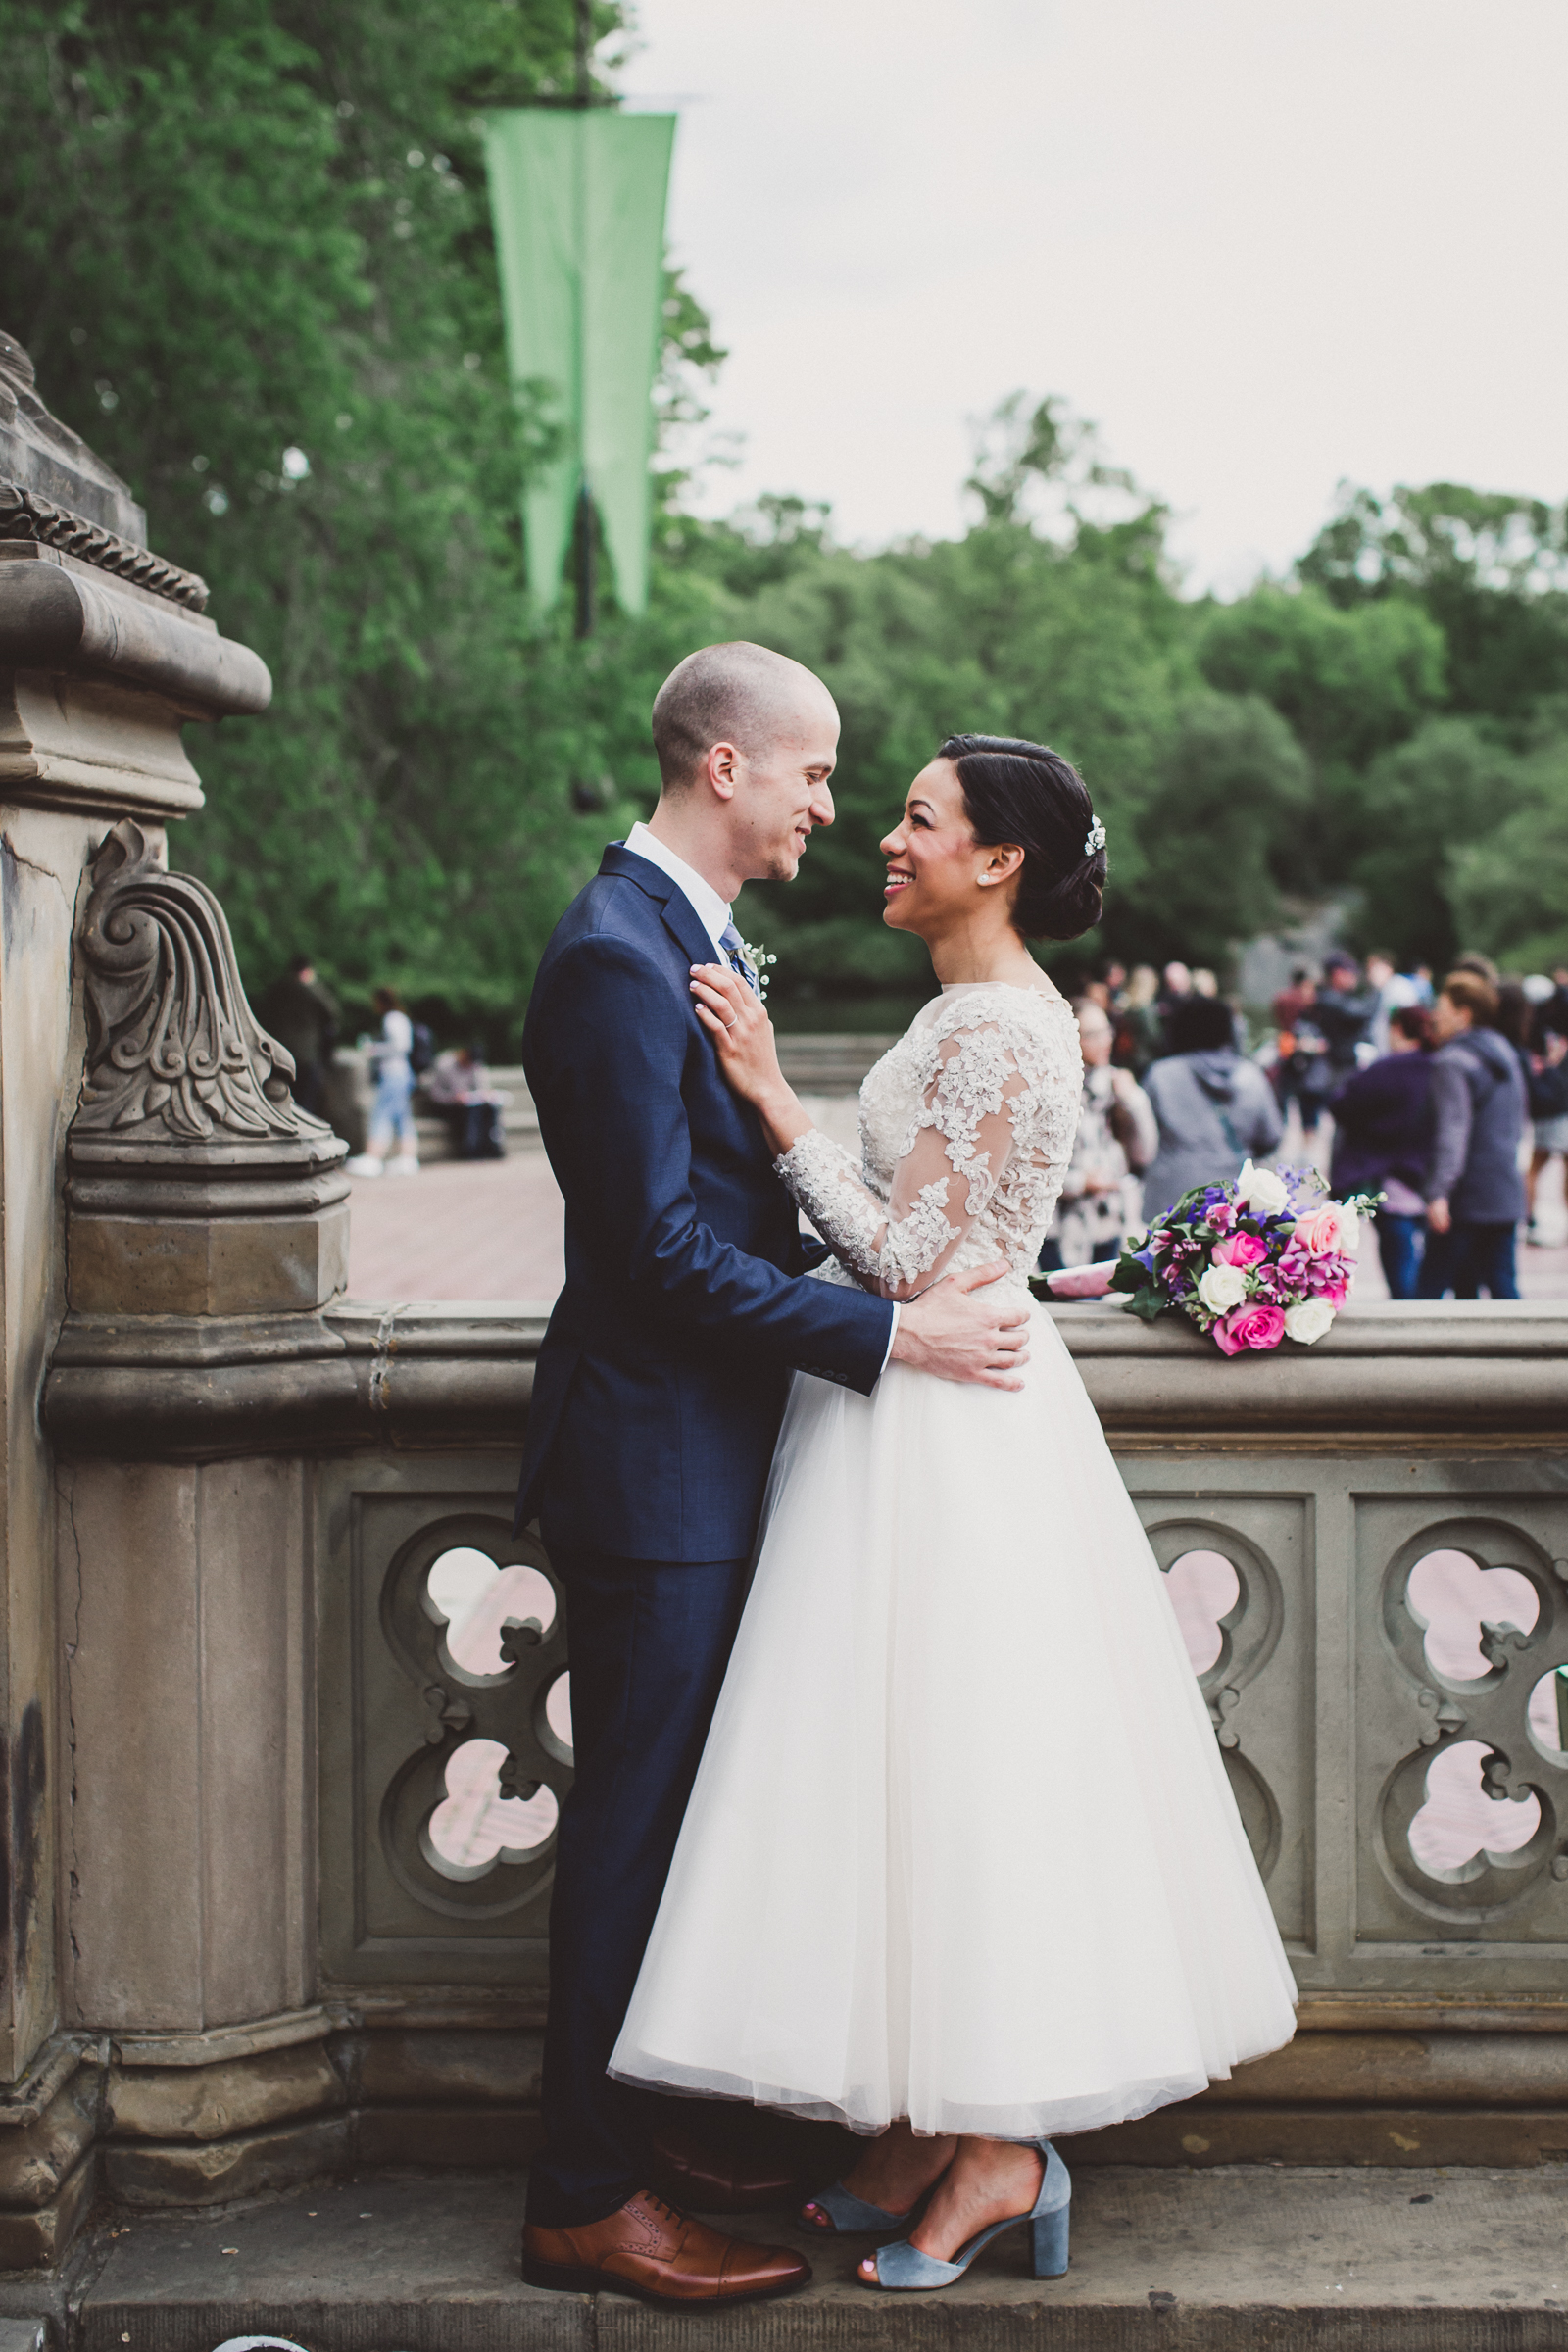 Wagner-Cove-Central-Park-Elopement-New-York-Documentary-Wedding-Photographer-22.jpg